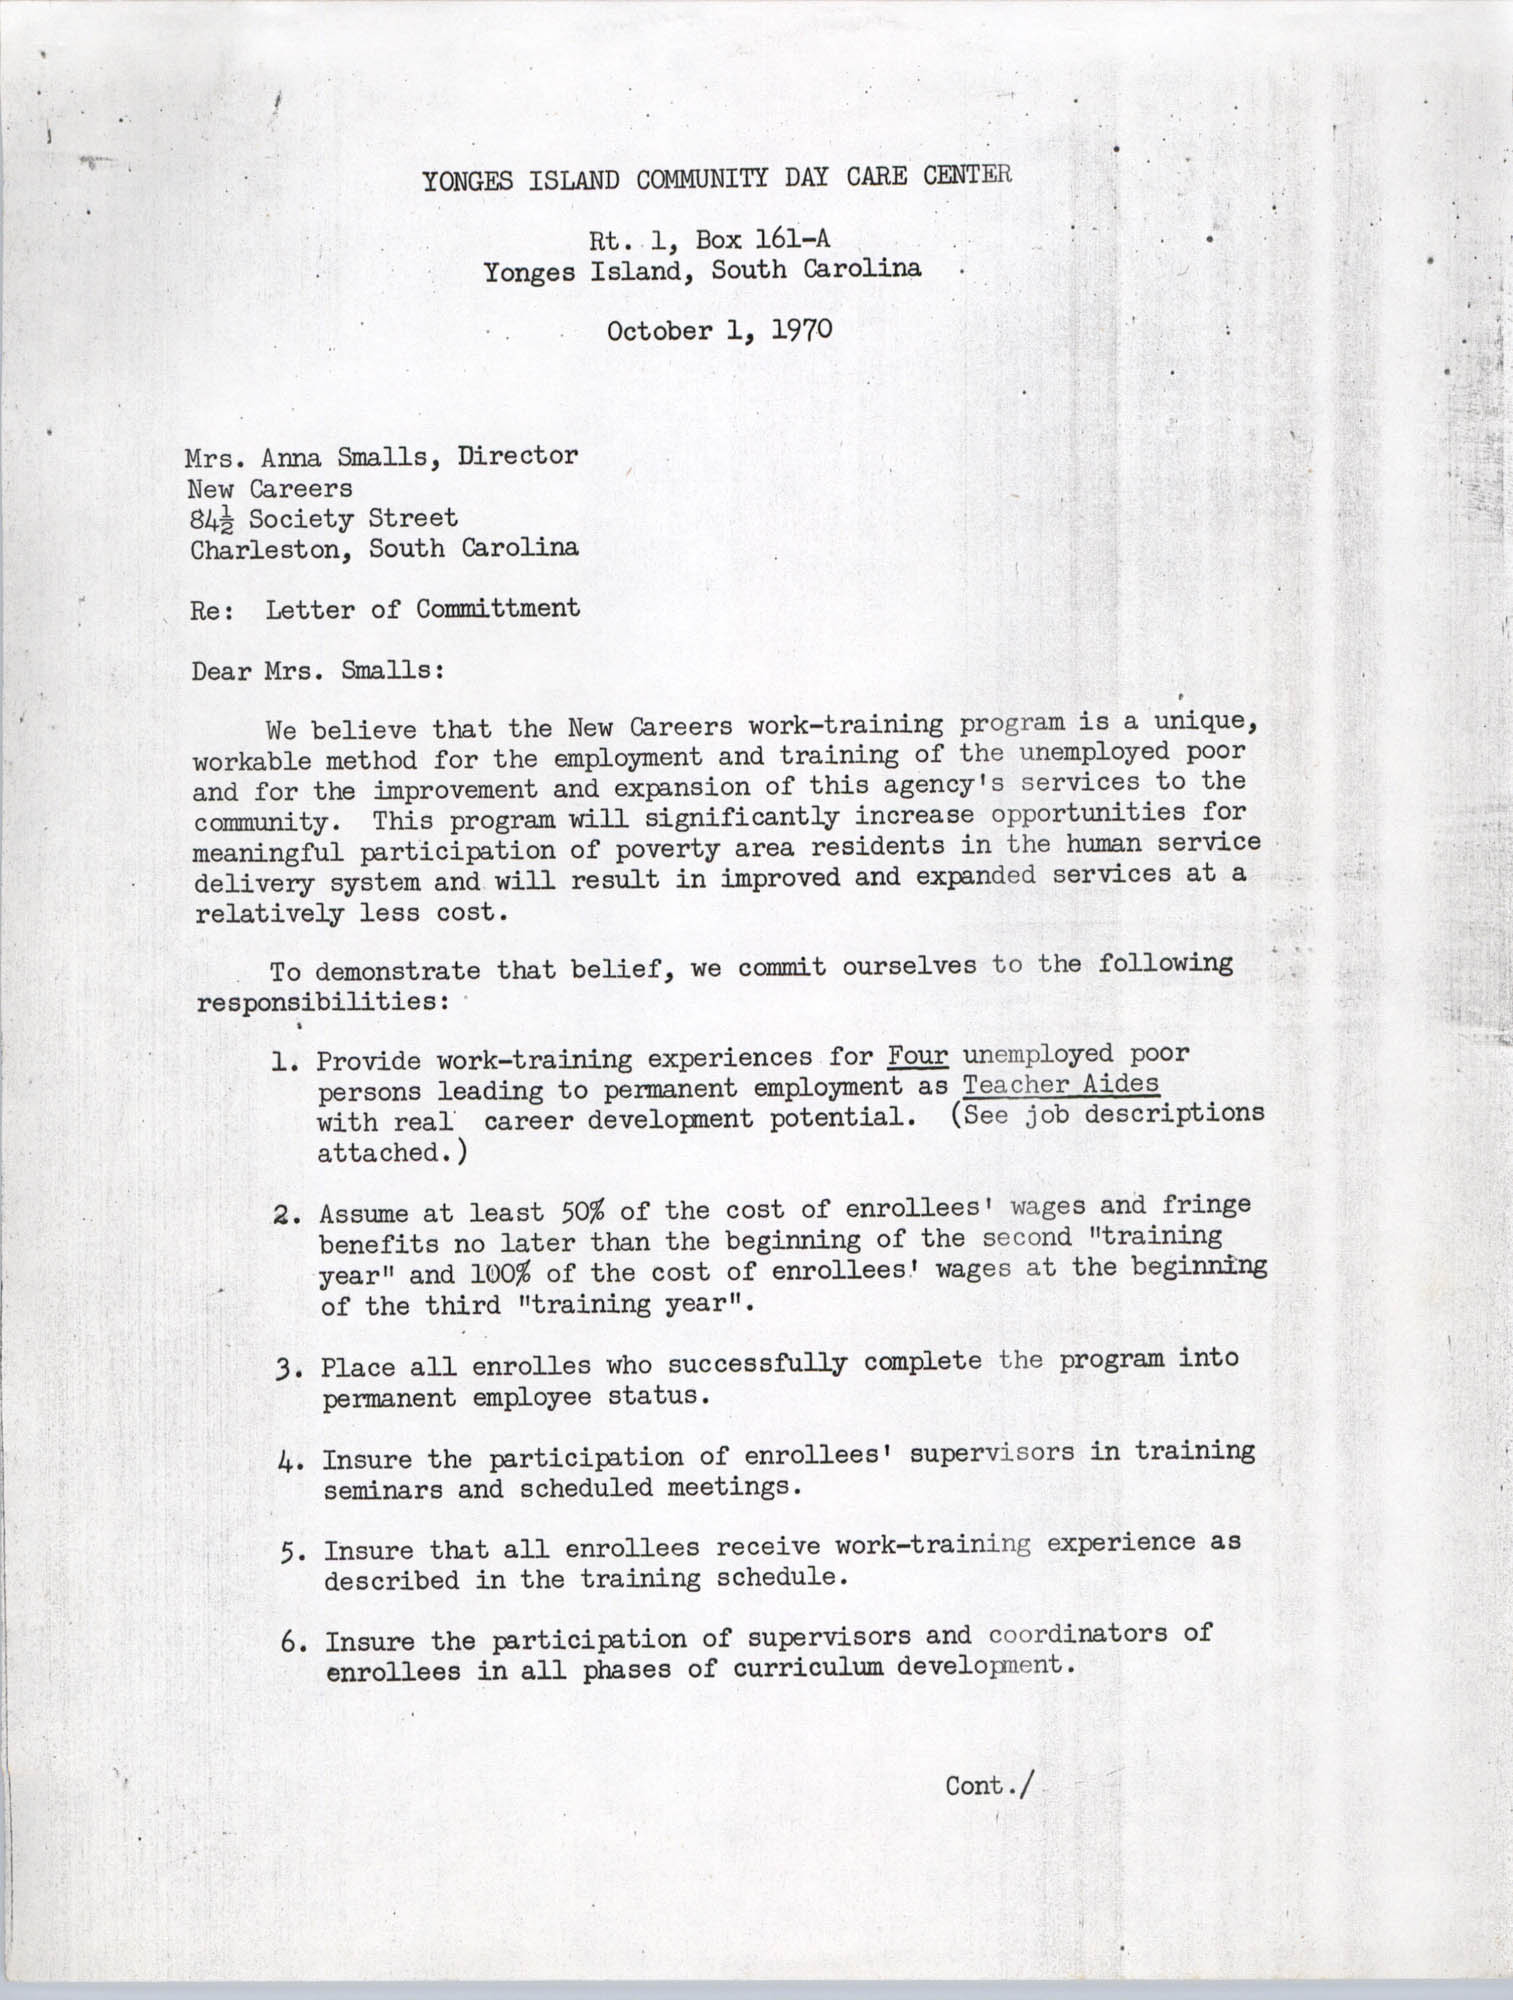 Letter from Yonges Island Community Day Care Center to Anna Smalls, October 1, 1970